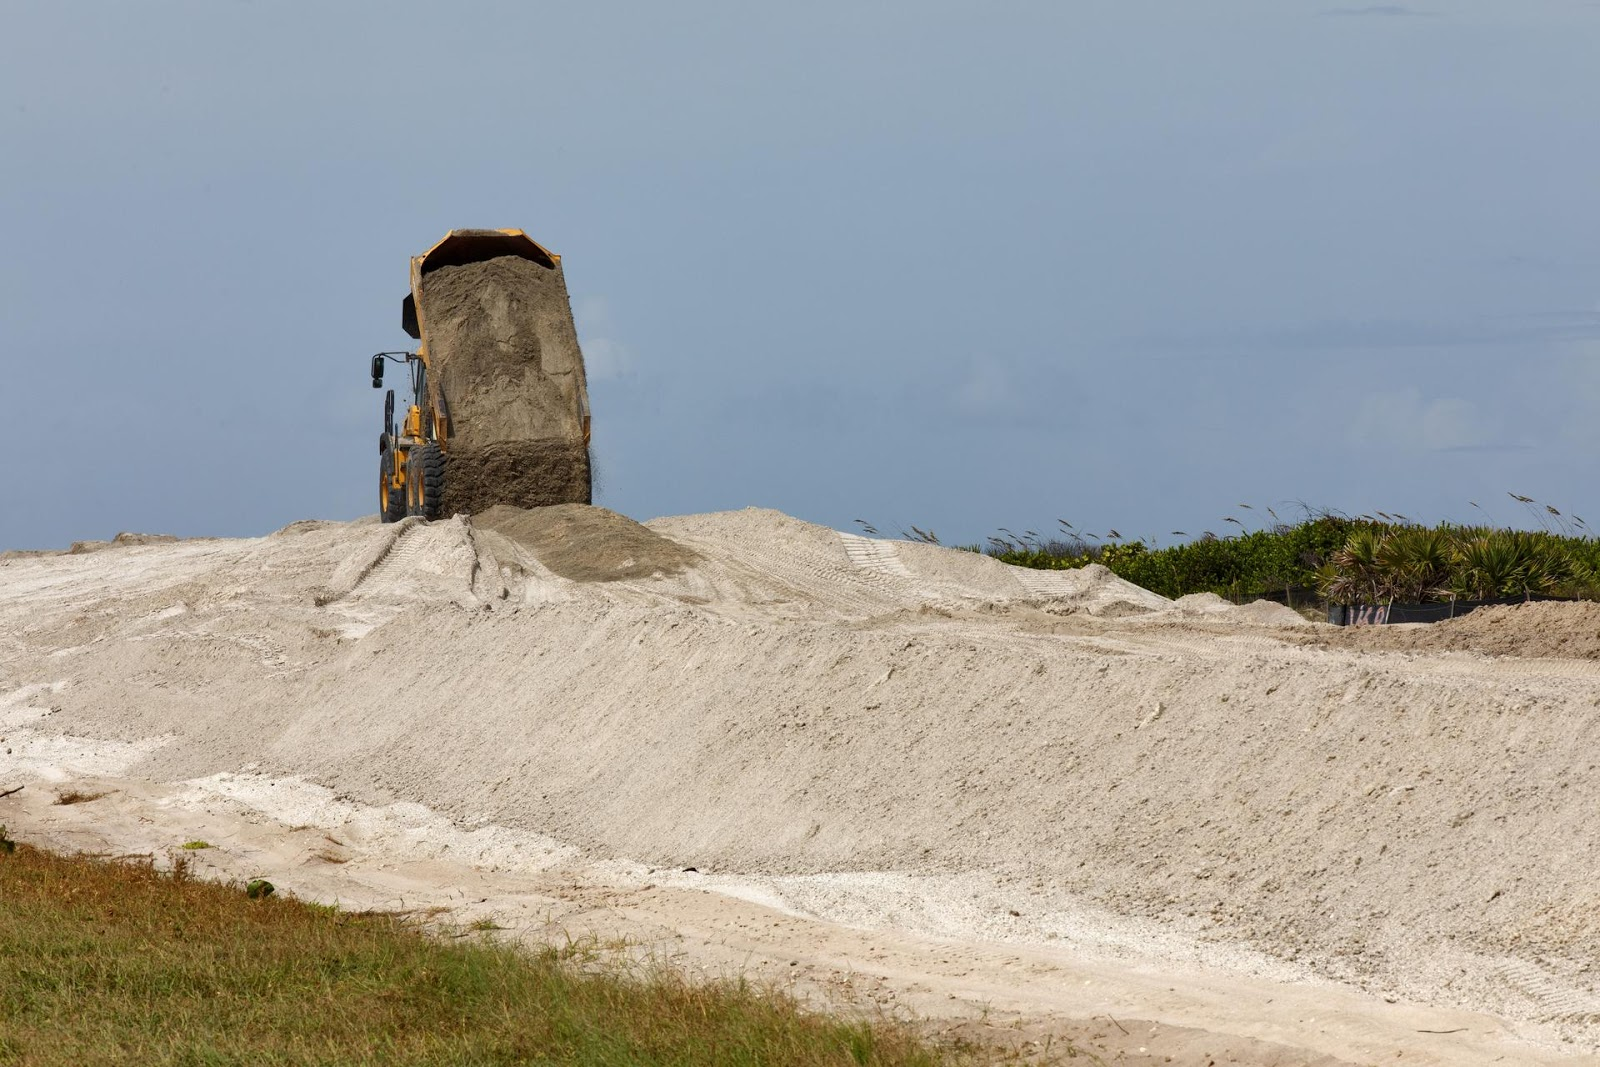 a dump truck on top of a large sand dune dumping more sand onto it